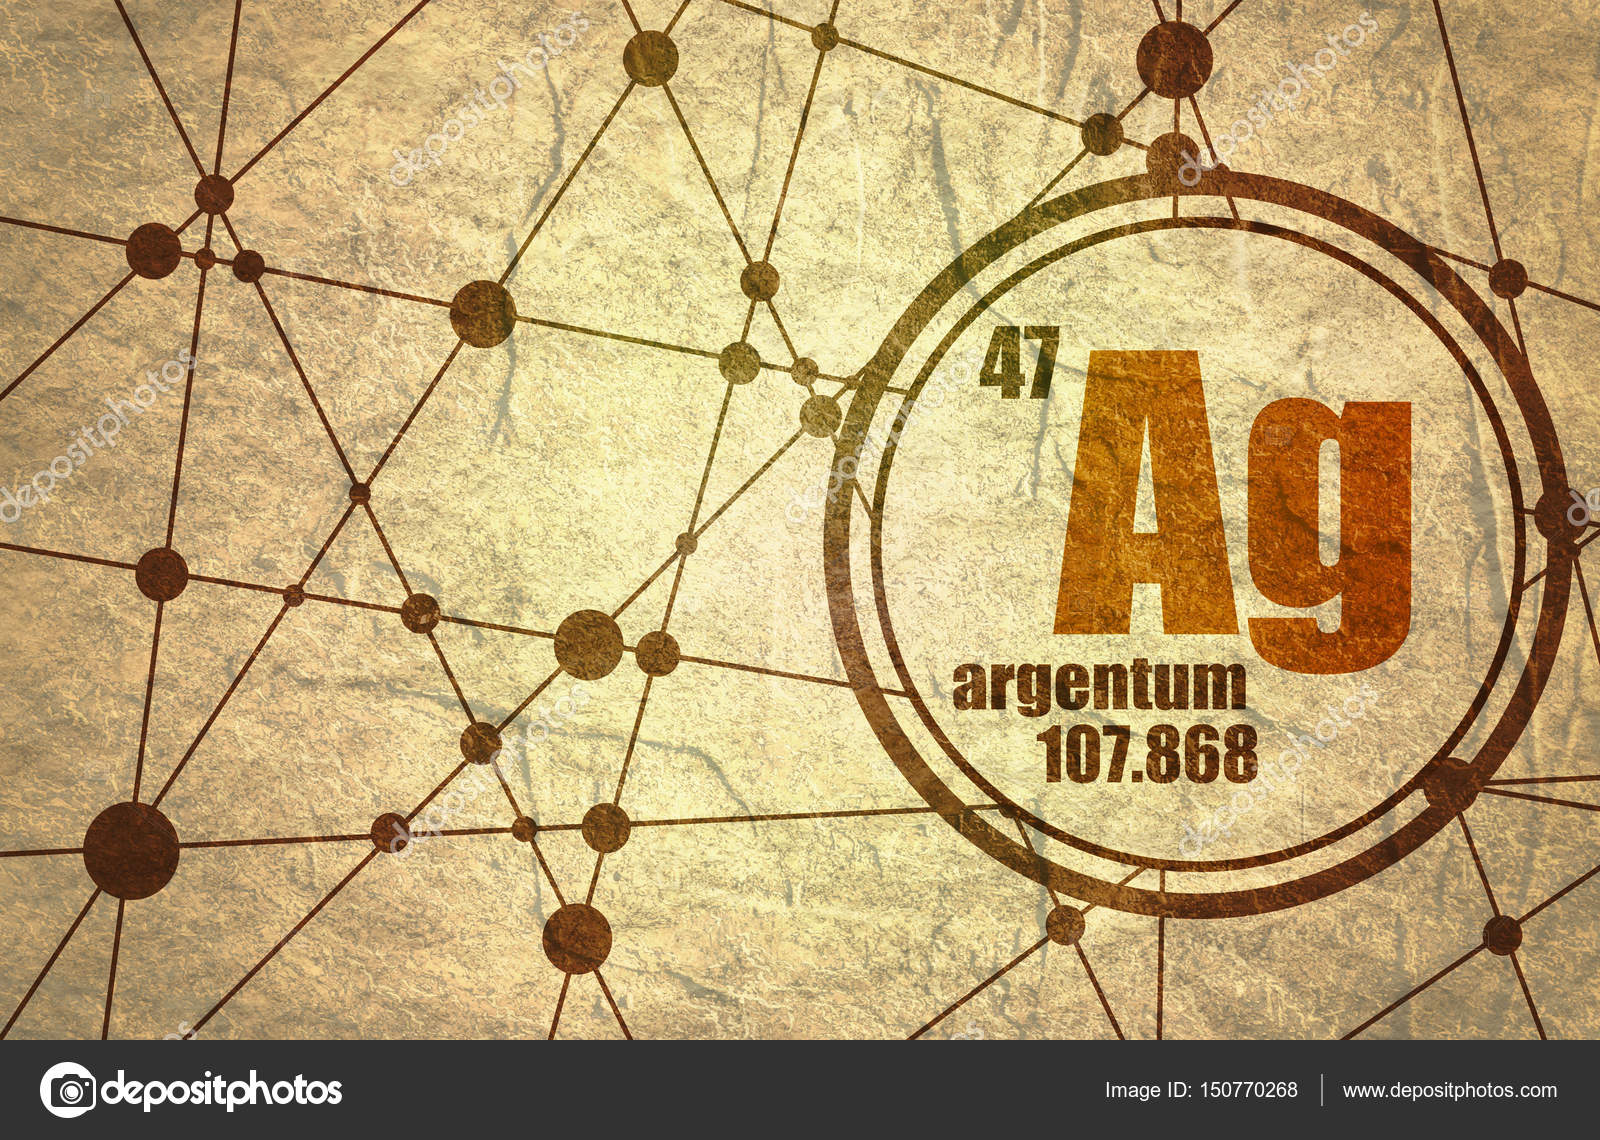 Silver chemical element stock photo jegasra 150770268 silver chemical element sign with atomic number and atomic weight chemical element of periodic table molecule and communication background urtaz Image collections